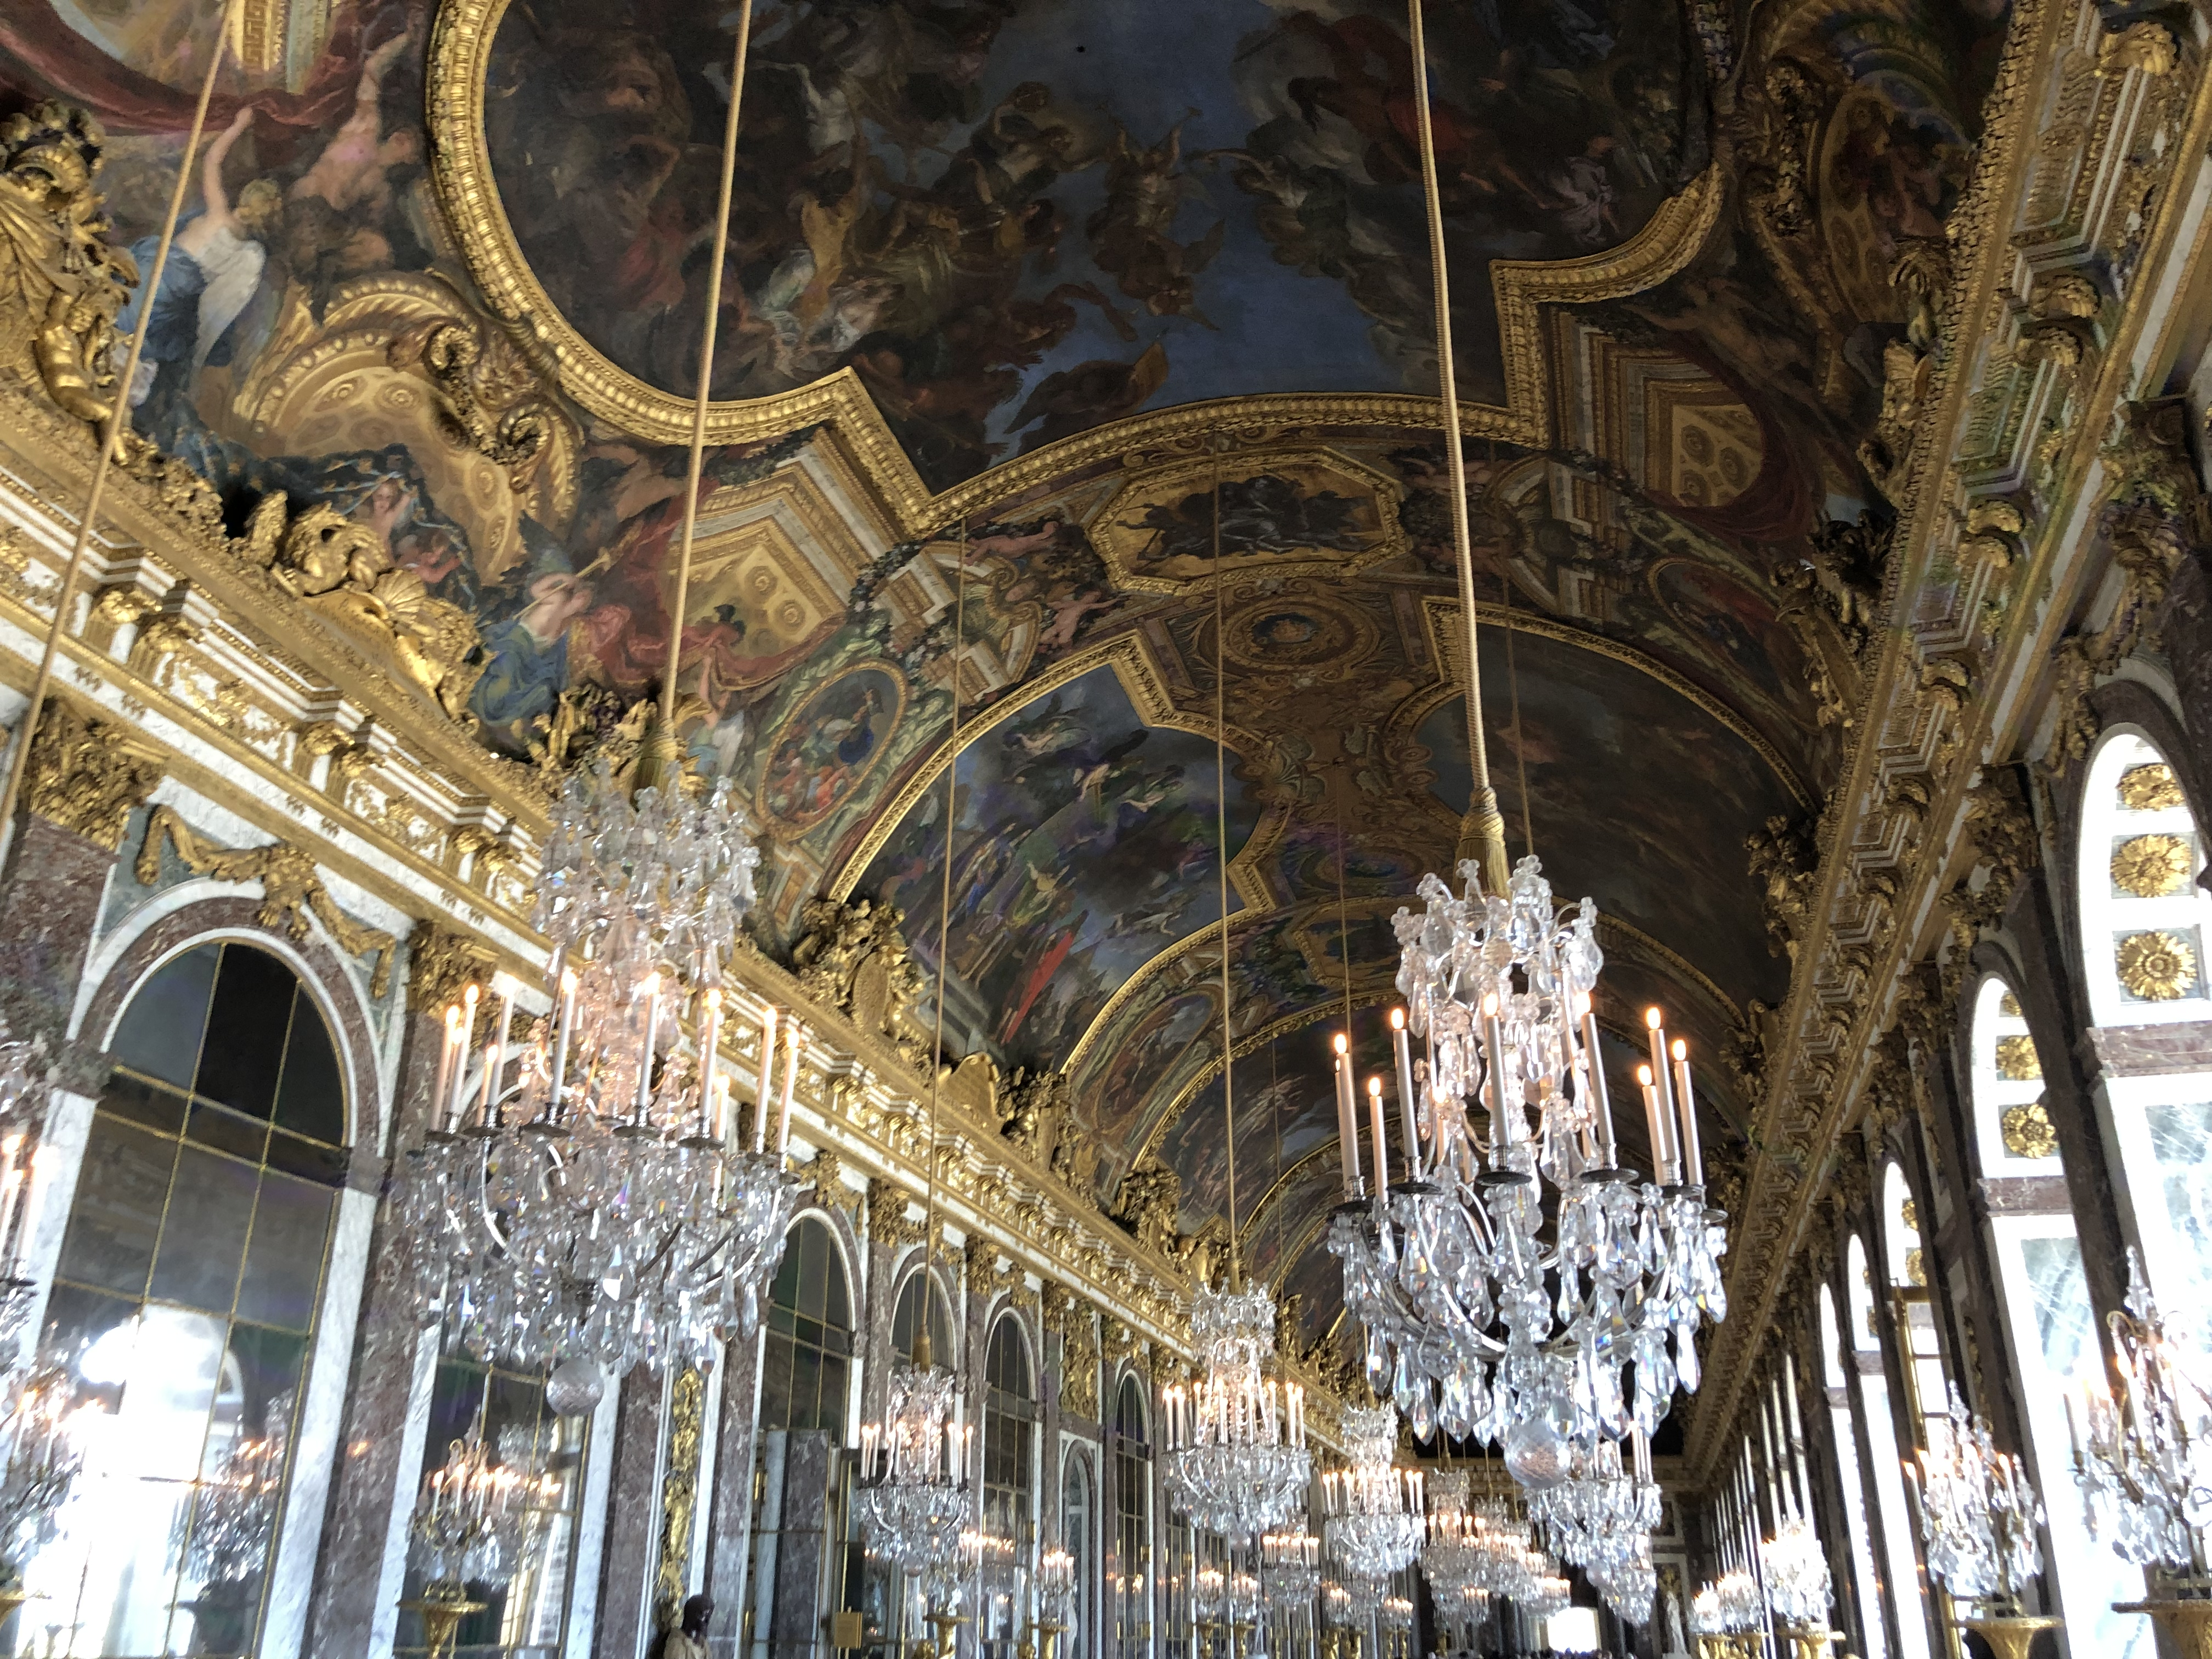 Ceiling in the Palace of Versailles